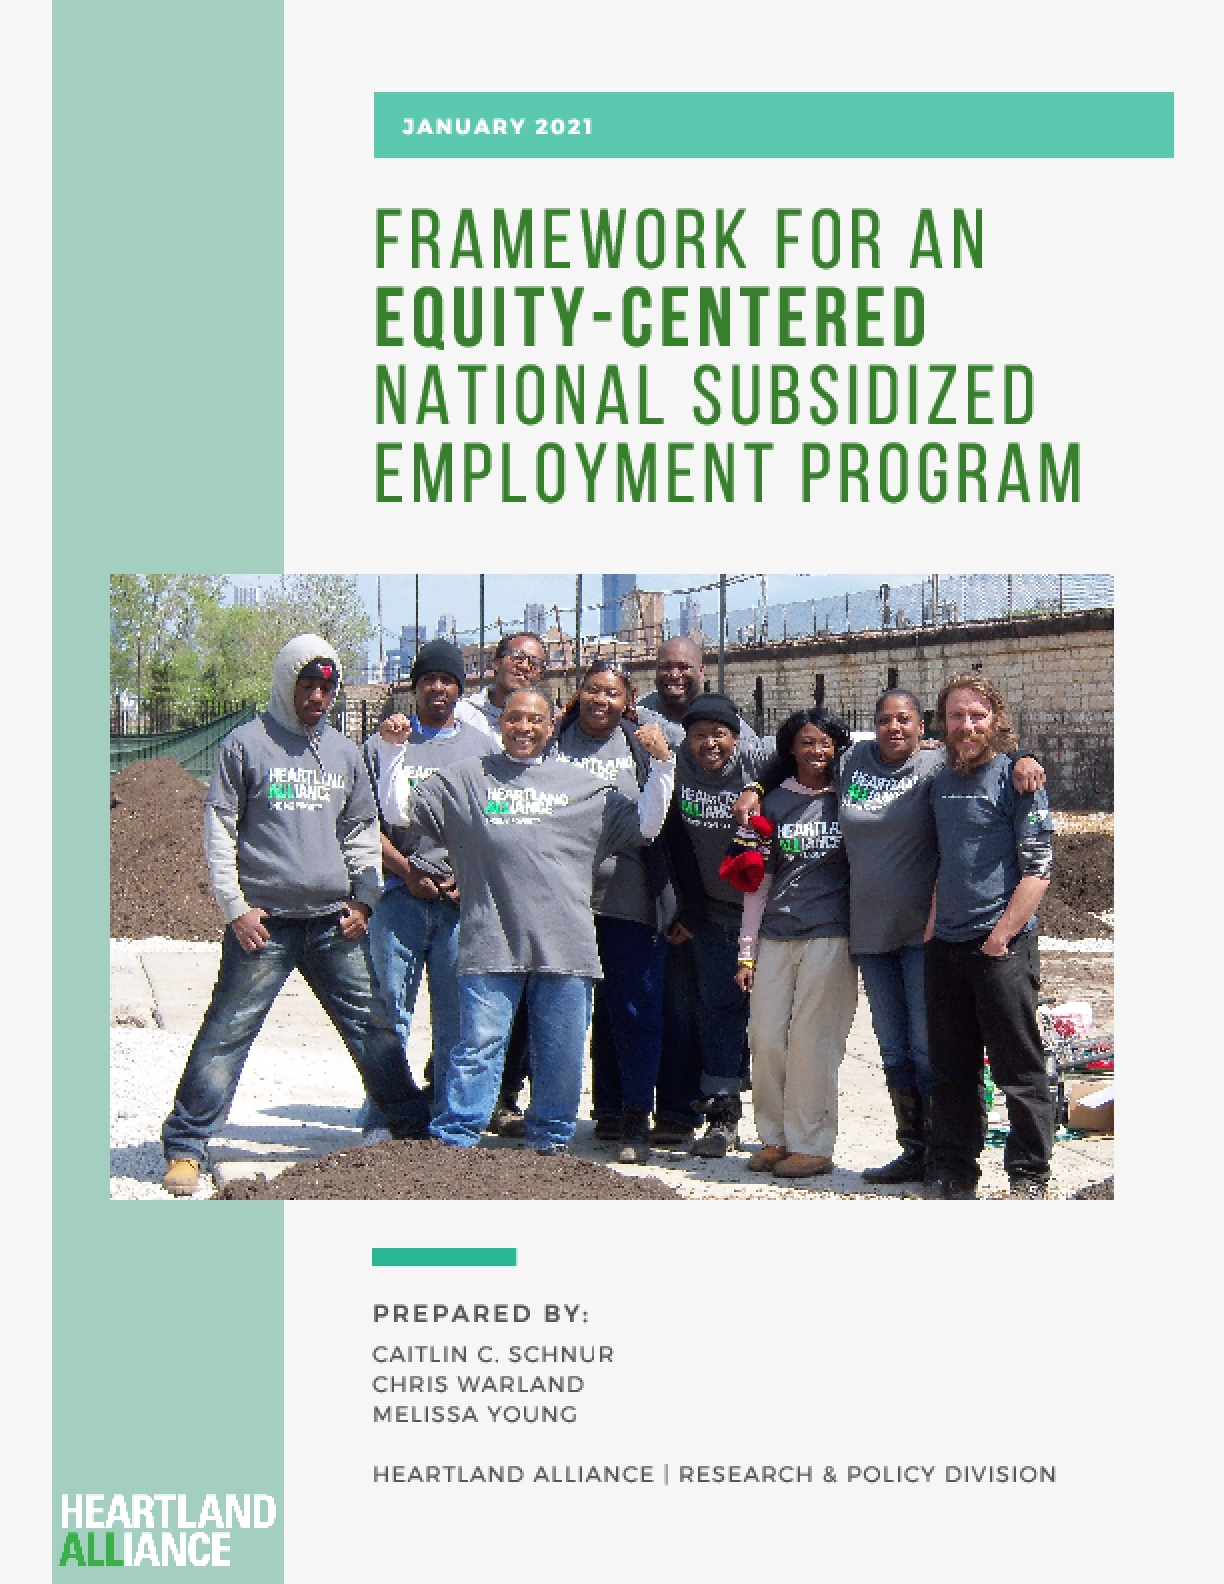 Framework for an Equity-Centered National Subsidized Employment Program